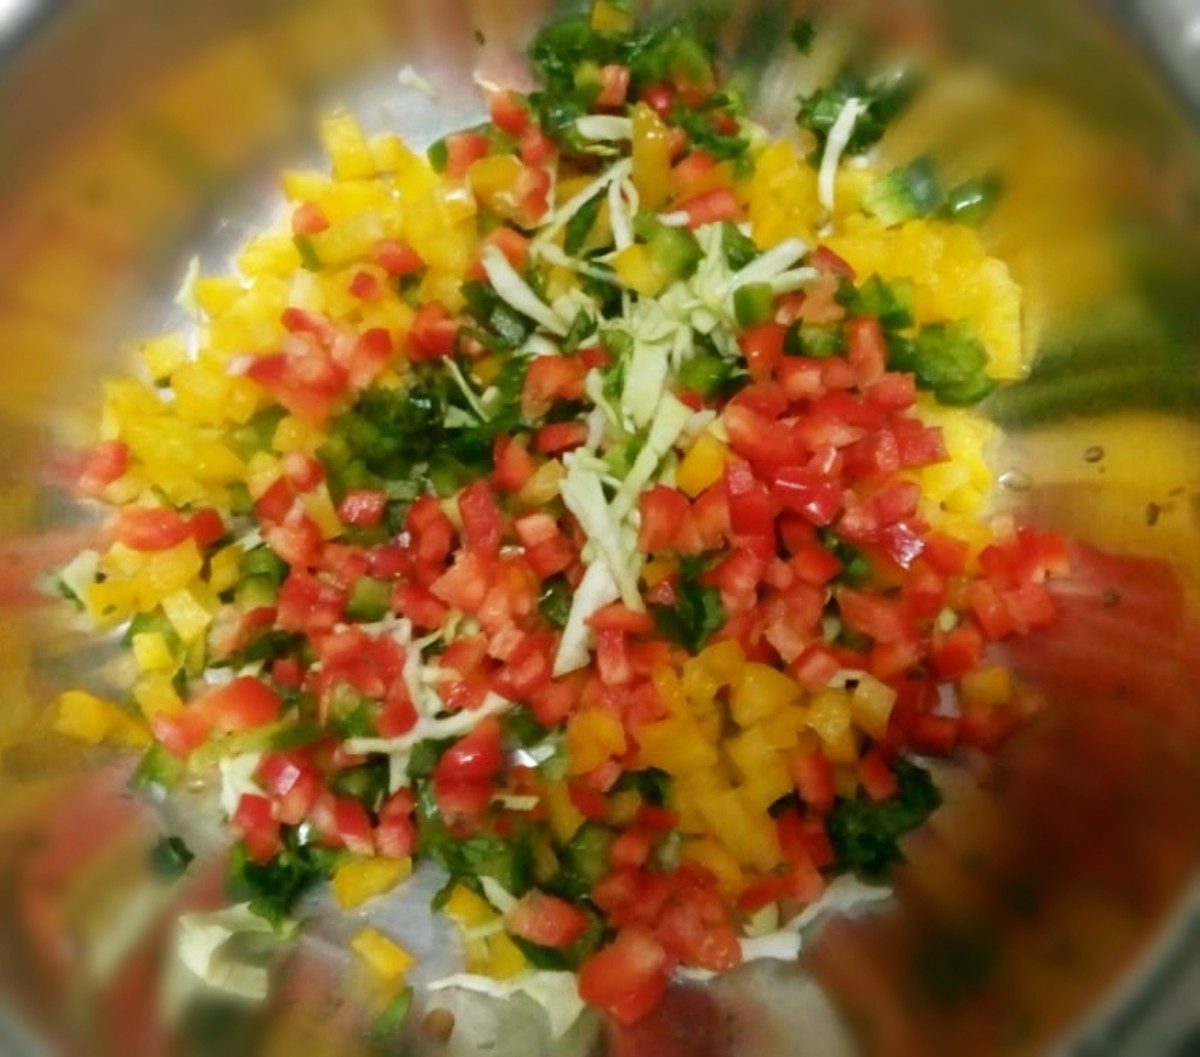 Finely chopped vegetables.